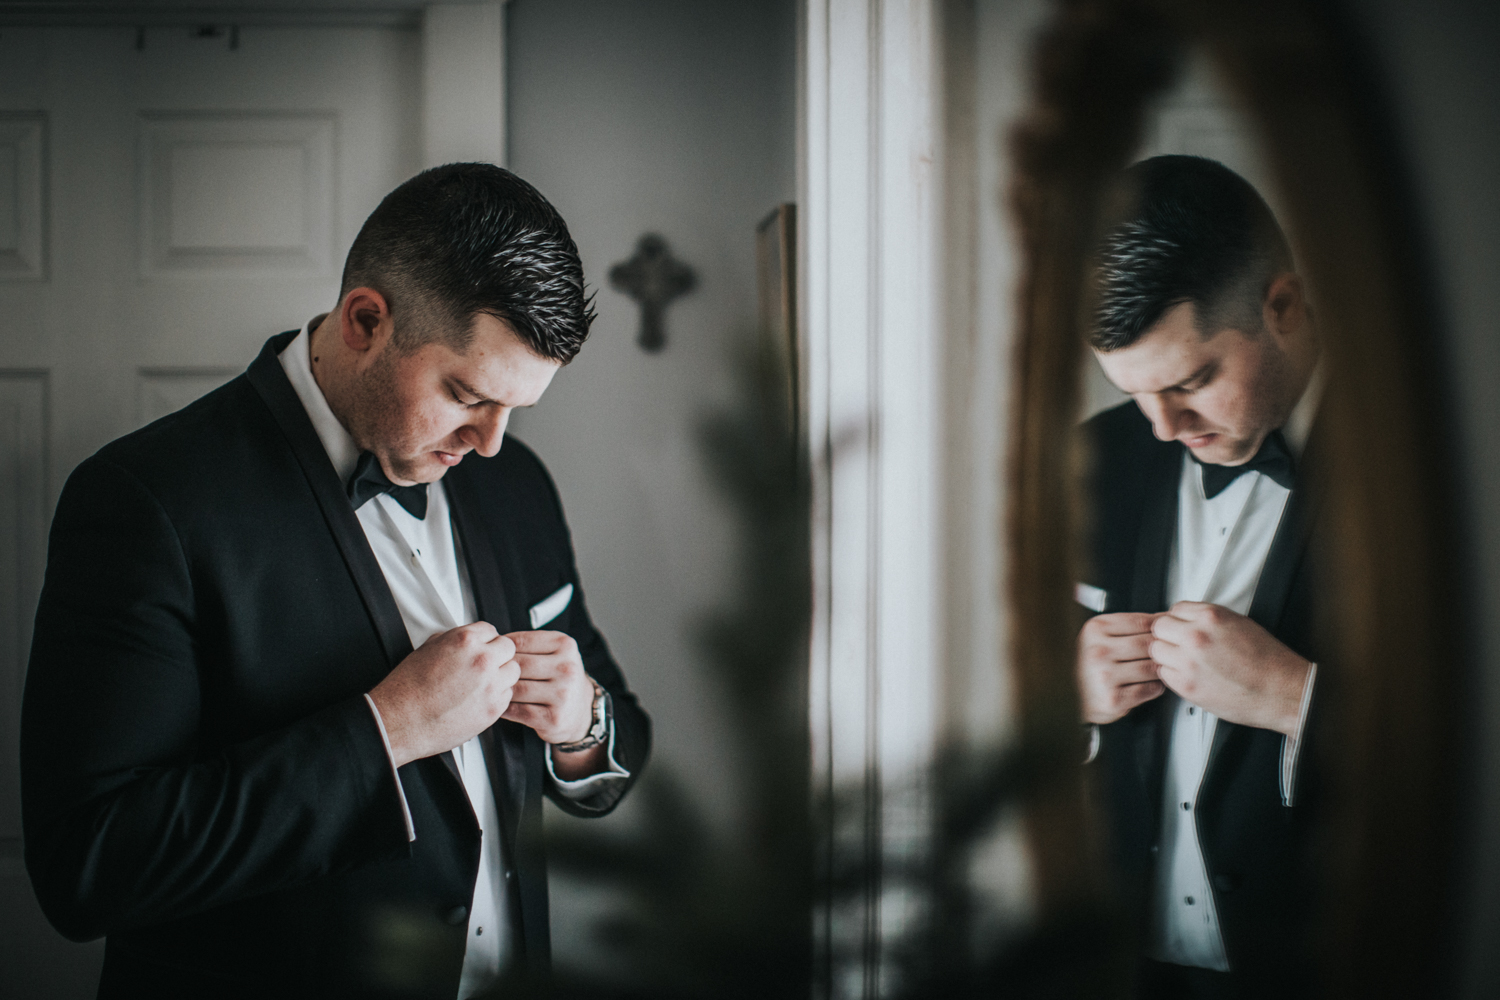 The-Mansion-NJ-Wedding-Jenna-Lynn-Photography-BriannaJimmy-GettingReady-1.jpg